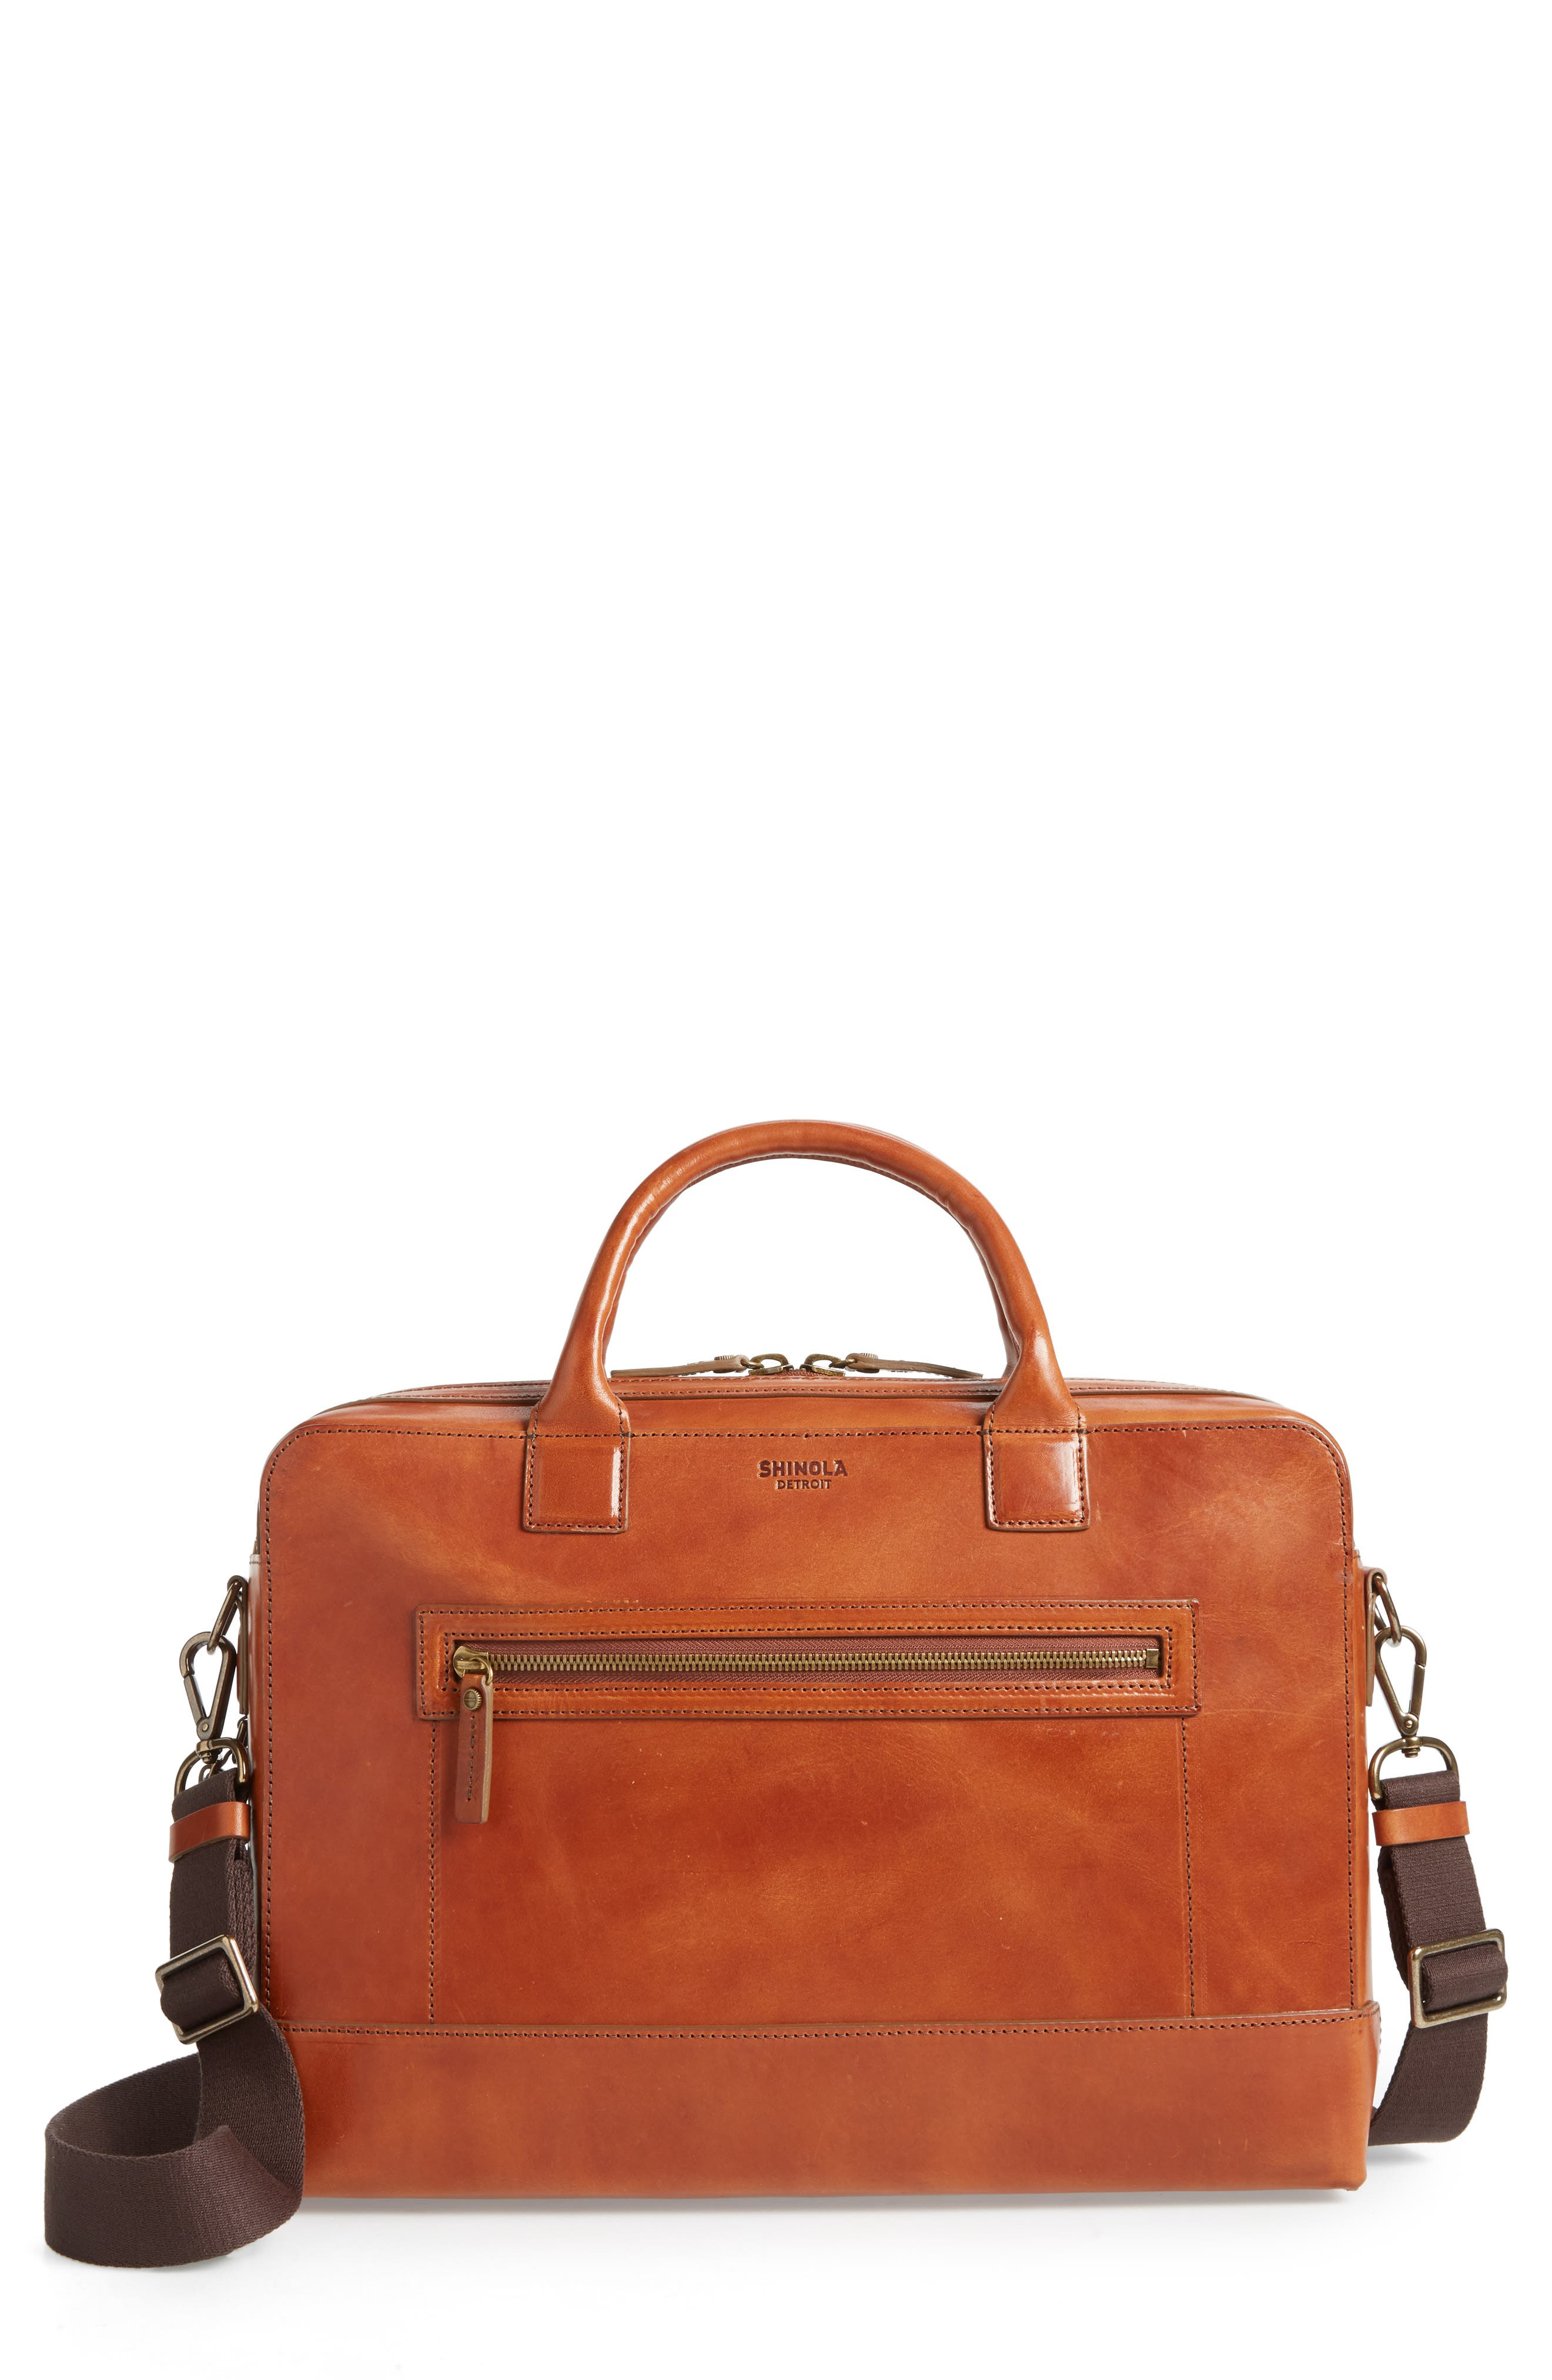 Harness Bedrock Leather Briefcase,                             Main thumbnail 1, color,                             220